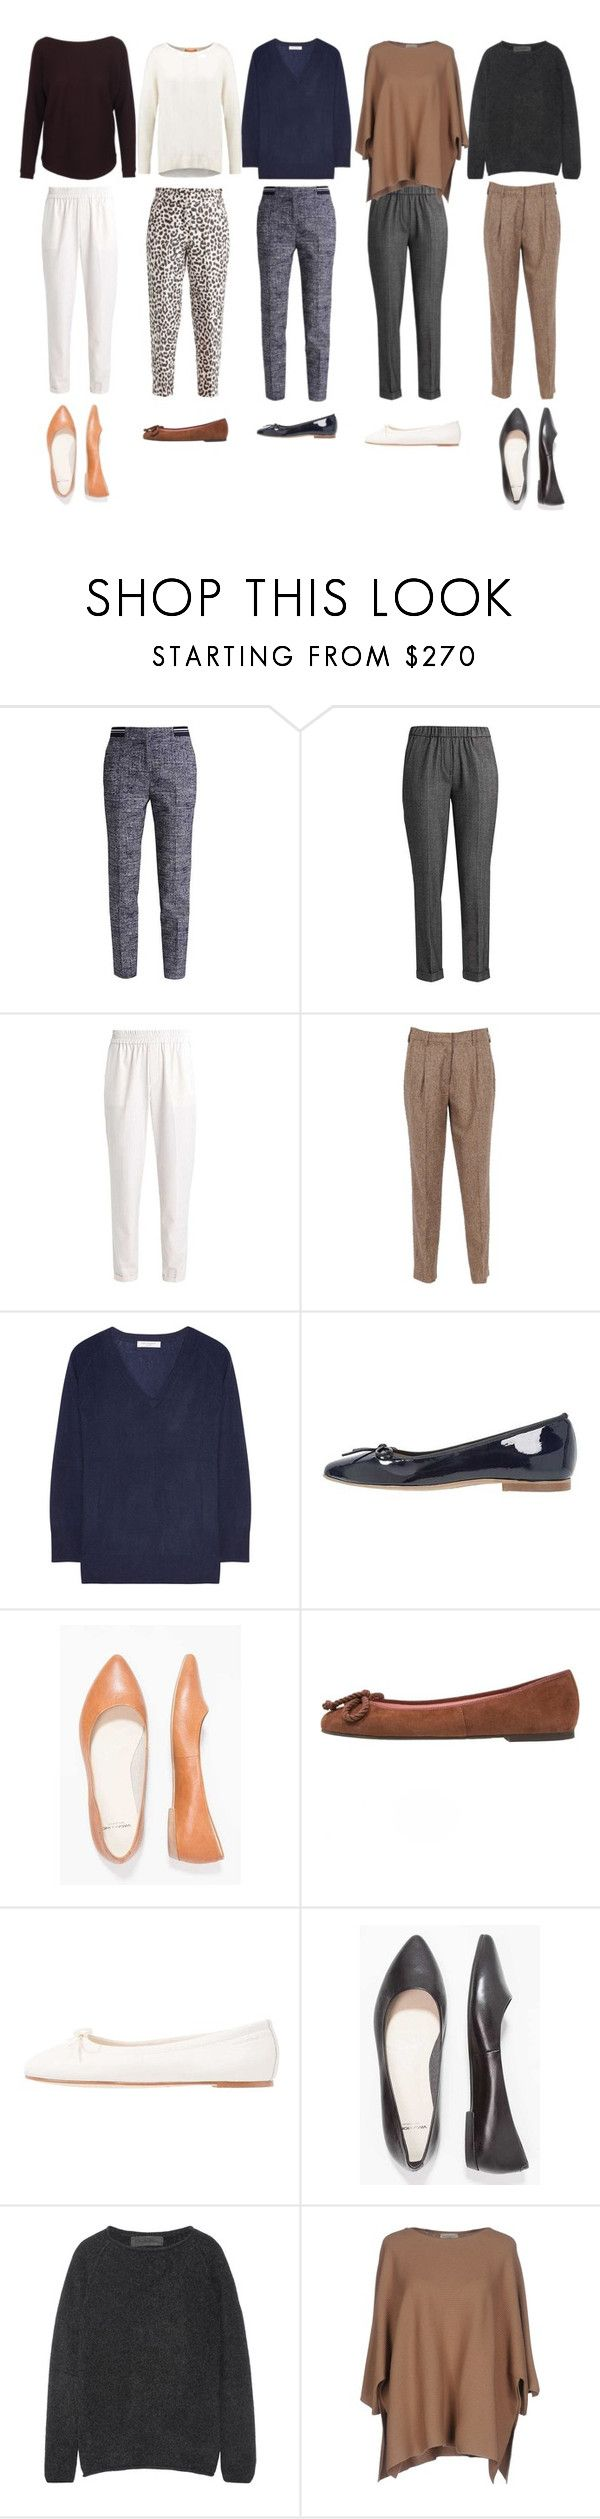 """Work wear - trousers, jumpers and flats"" by arcticjasmine on Polyvore featuring InWear, Etro, Equipment, BOSS Orange, Pretty Ballerinas, The Elder Statesman and Bruno Manetti"